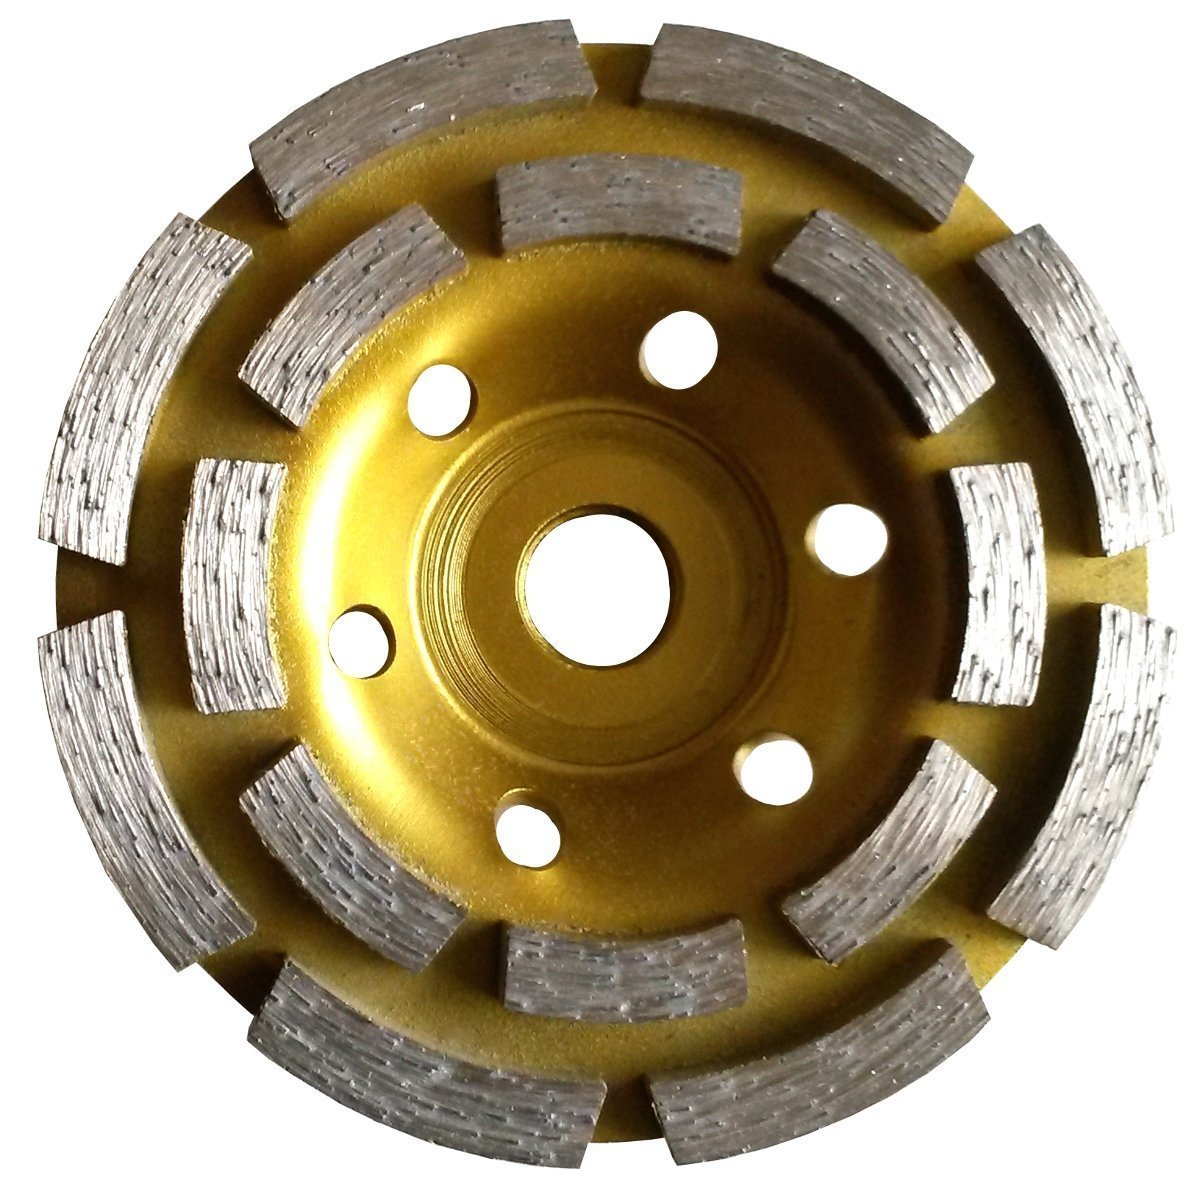 5-Inch Diamond Grinding Cup Wheel Double Row Premium Higher Diamond Concentration for for Concrete and Paint, Epoxy, Mastic, Coating Removal, Travertine grinding, stone grinding, quartz grinding